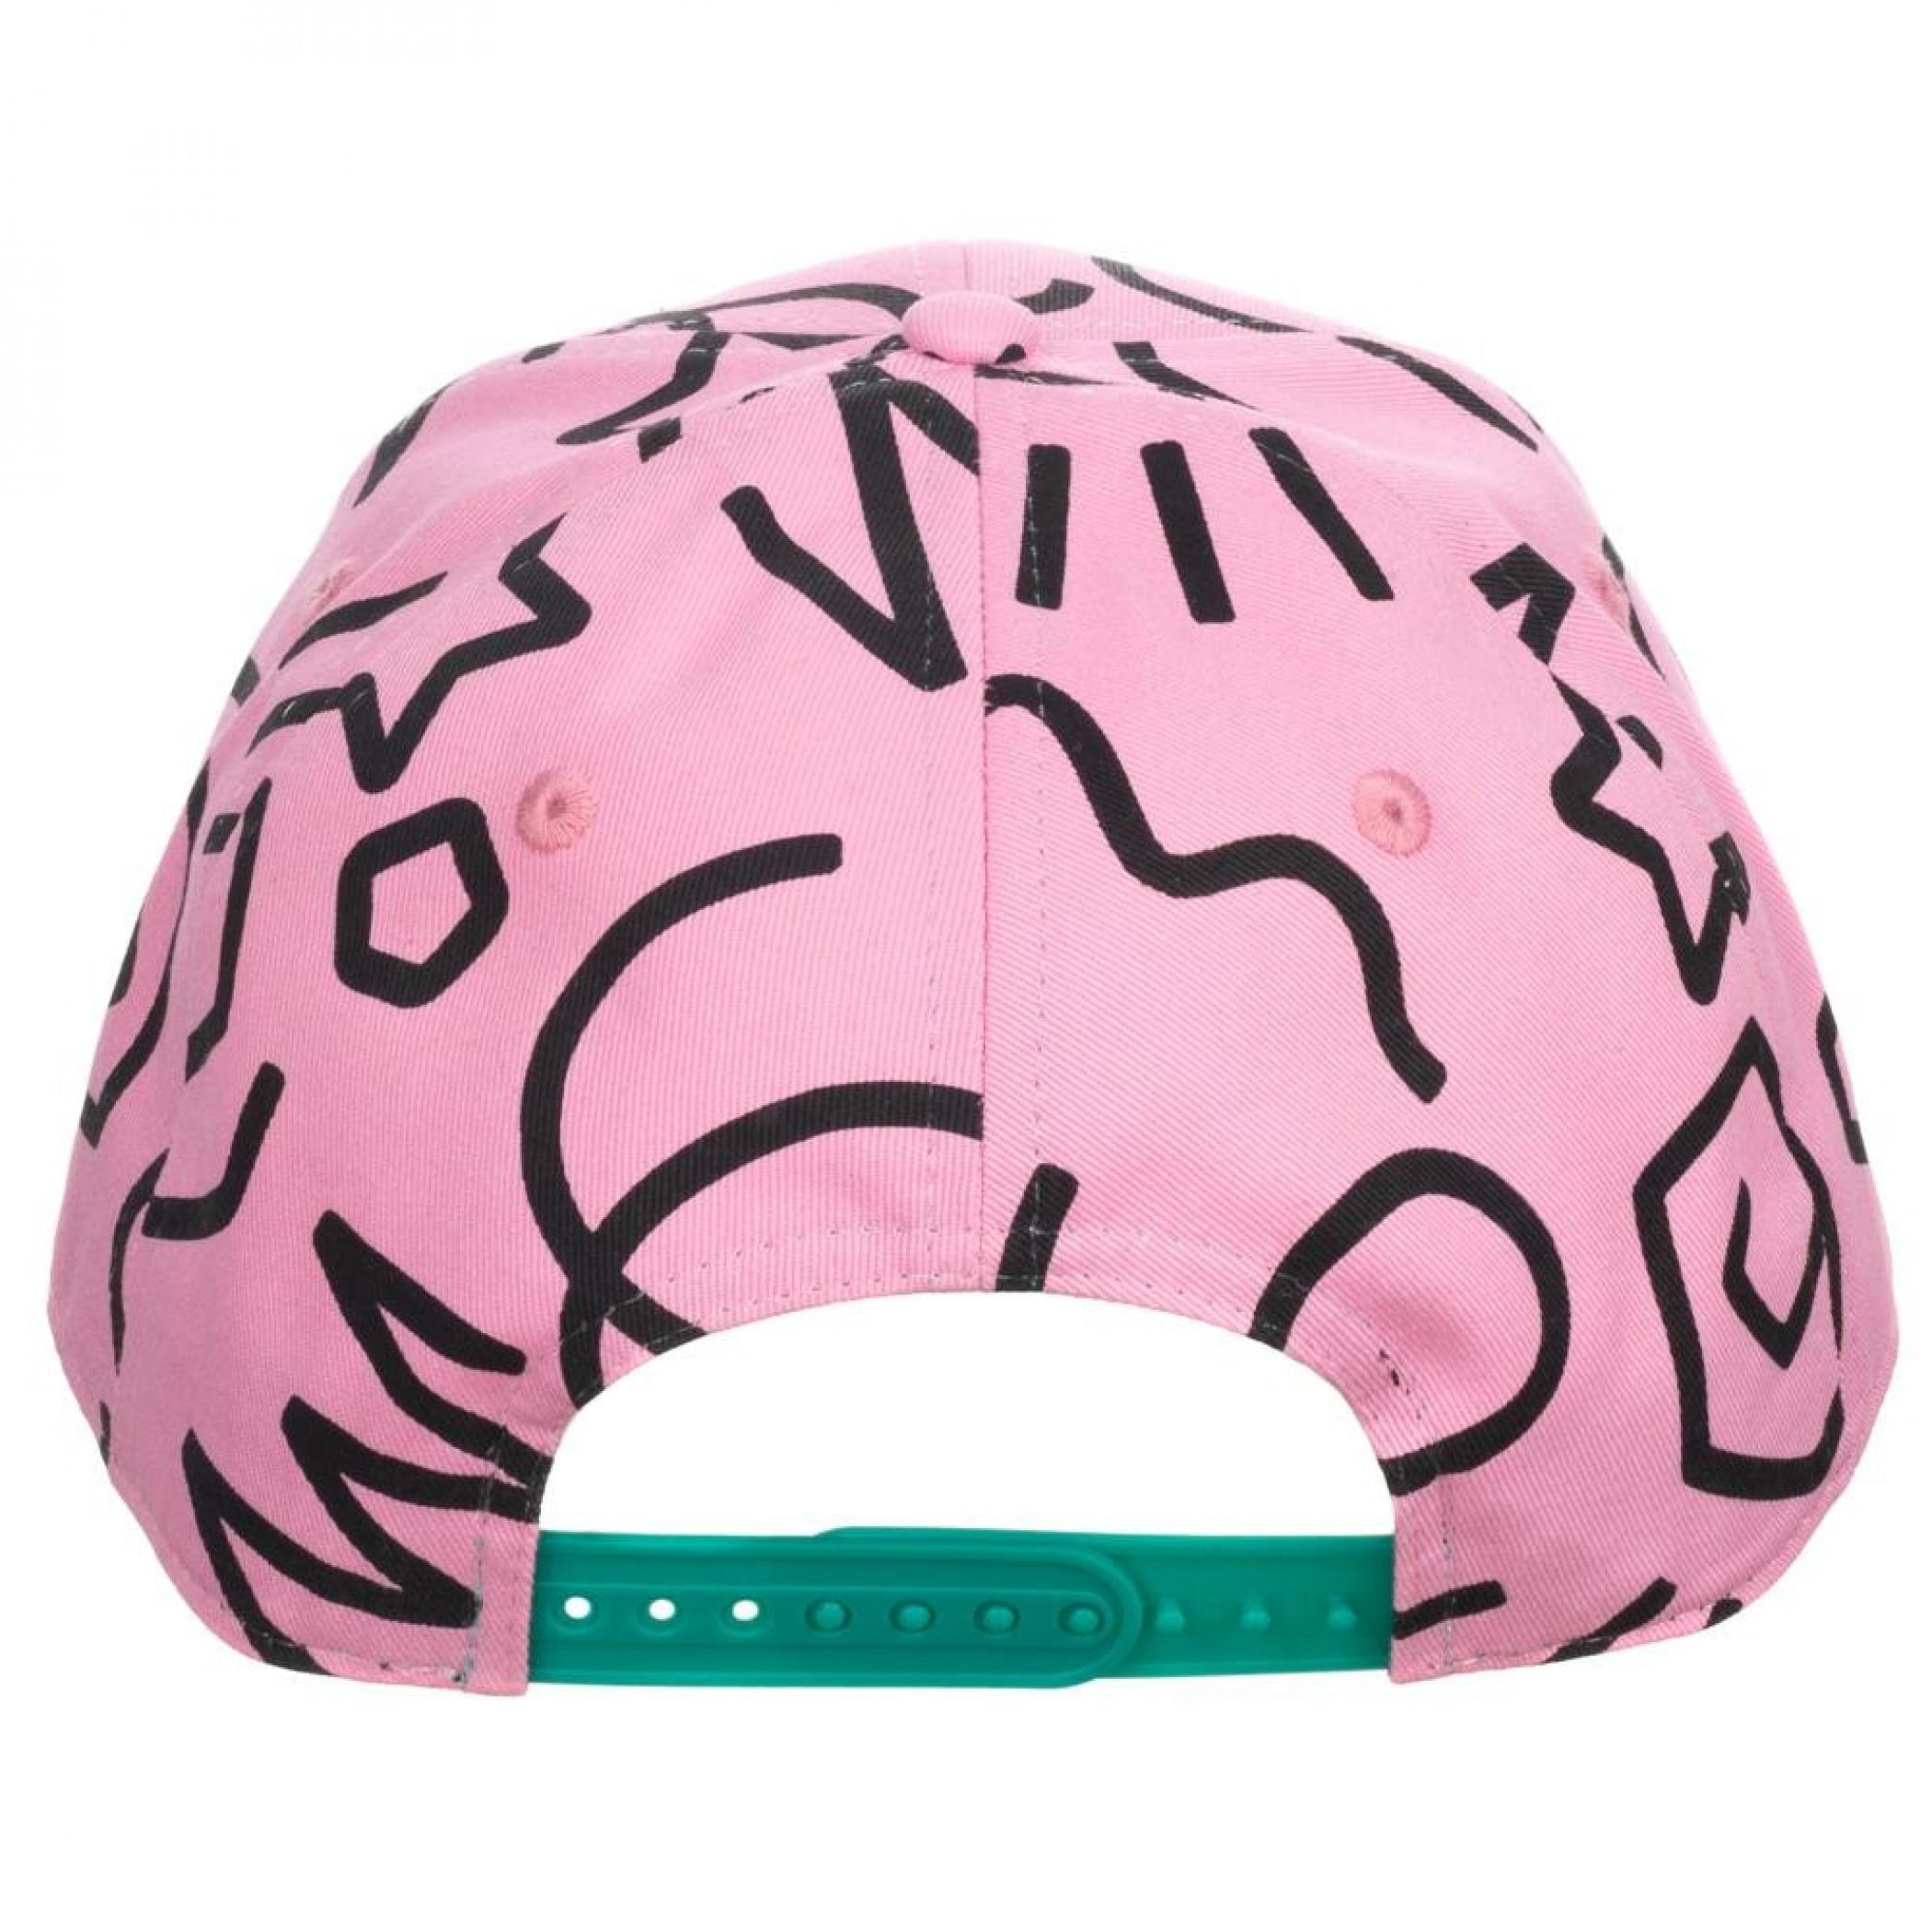 Pokemon Jigglypuff All Over Print Pre-Curved Snapback Hat